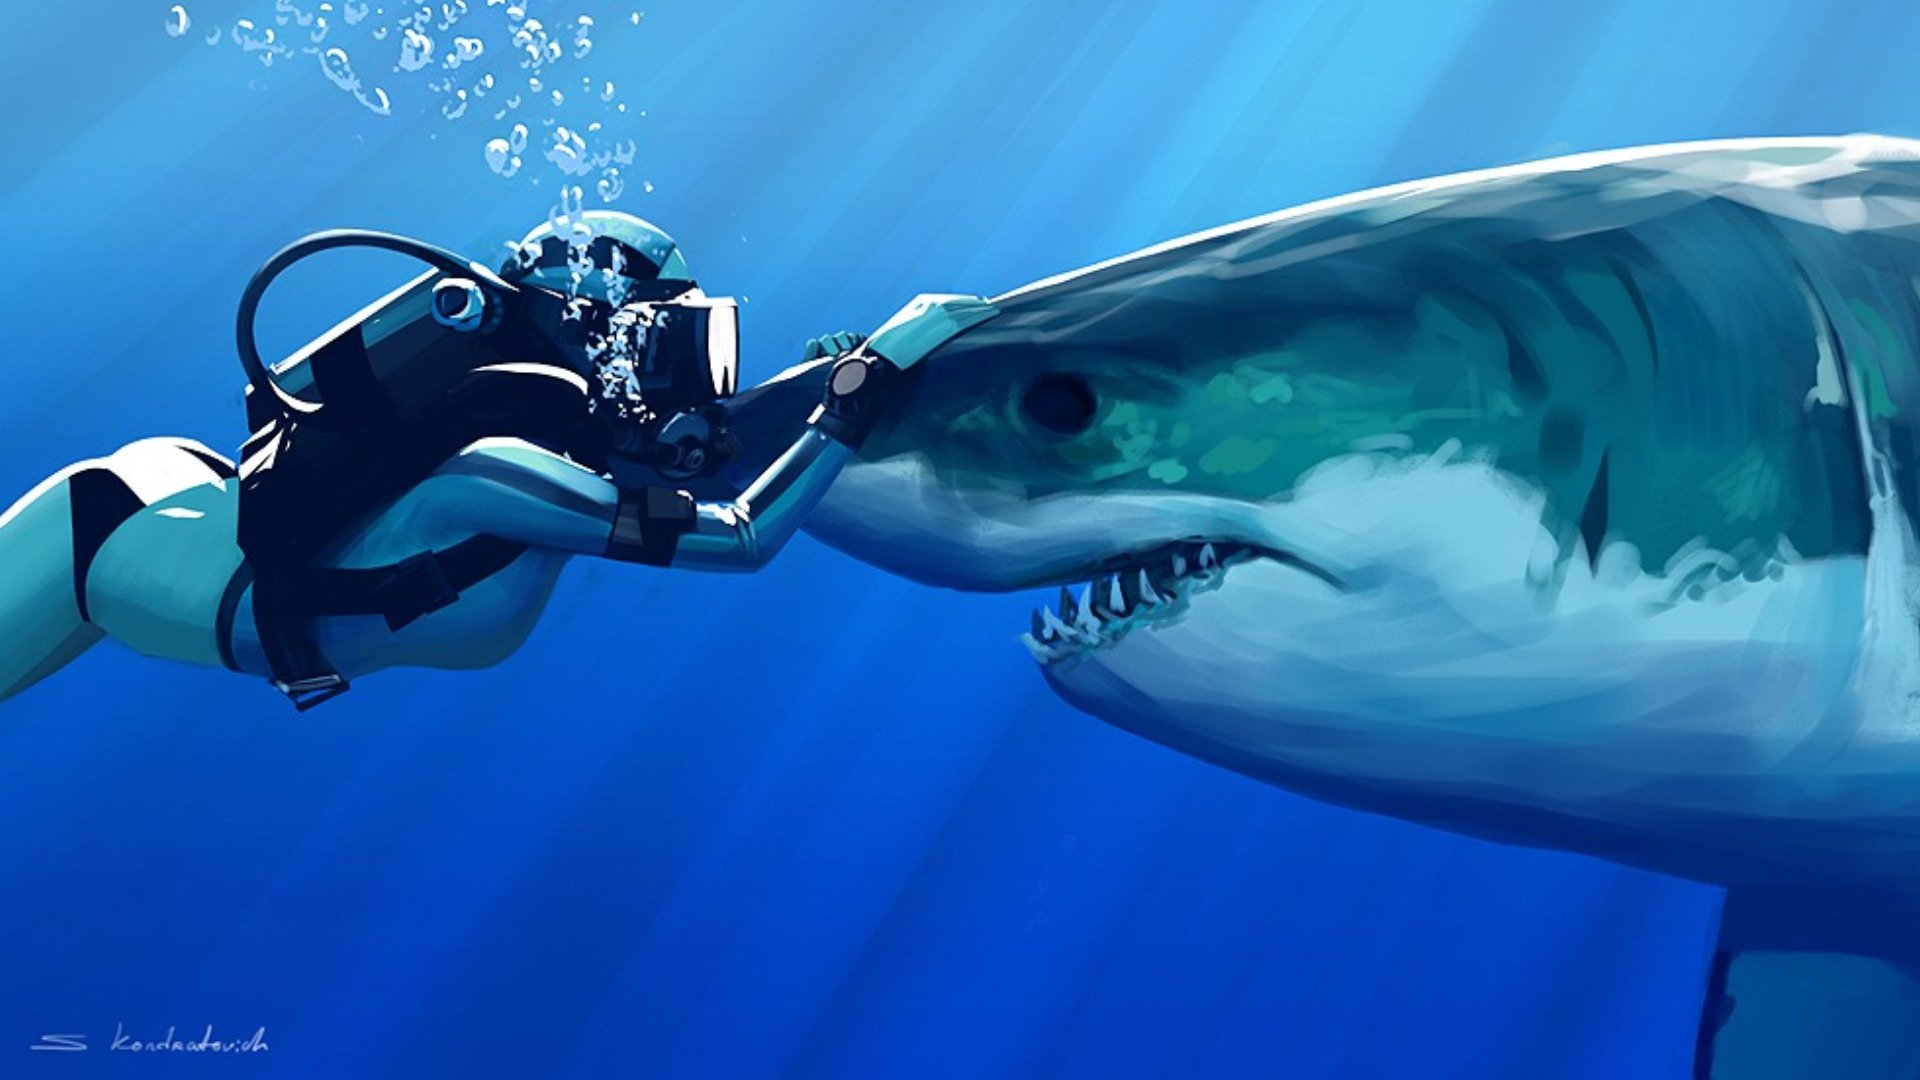 Awesome background pictures wallpapersafari - Free Great White Shark Wallpaper Wallpapersafari